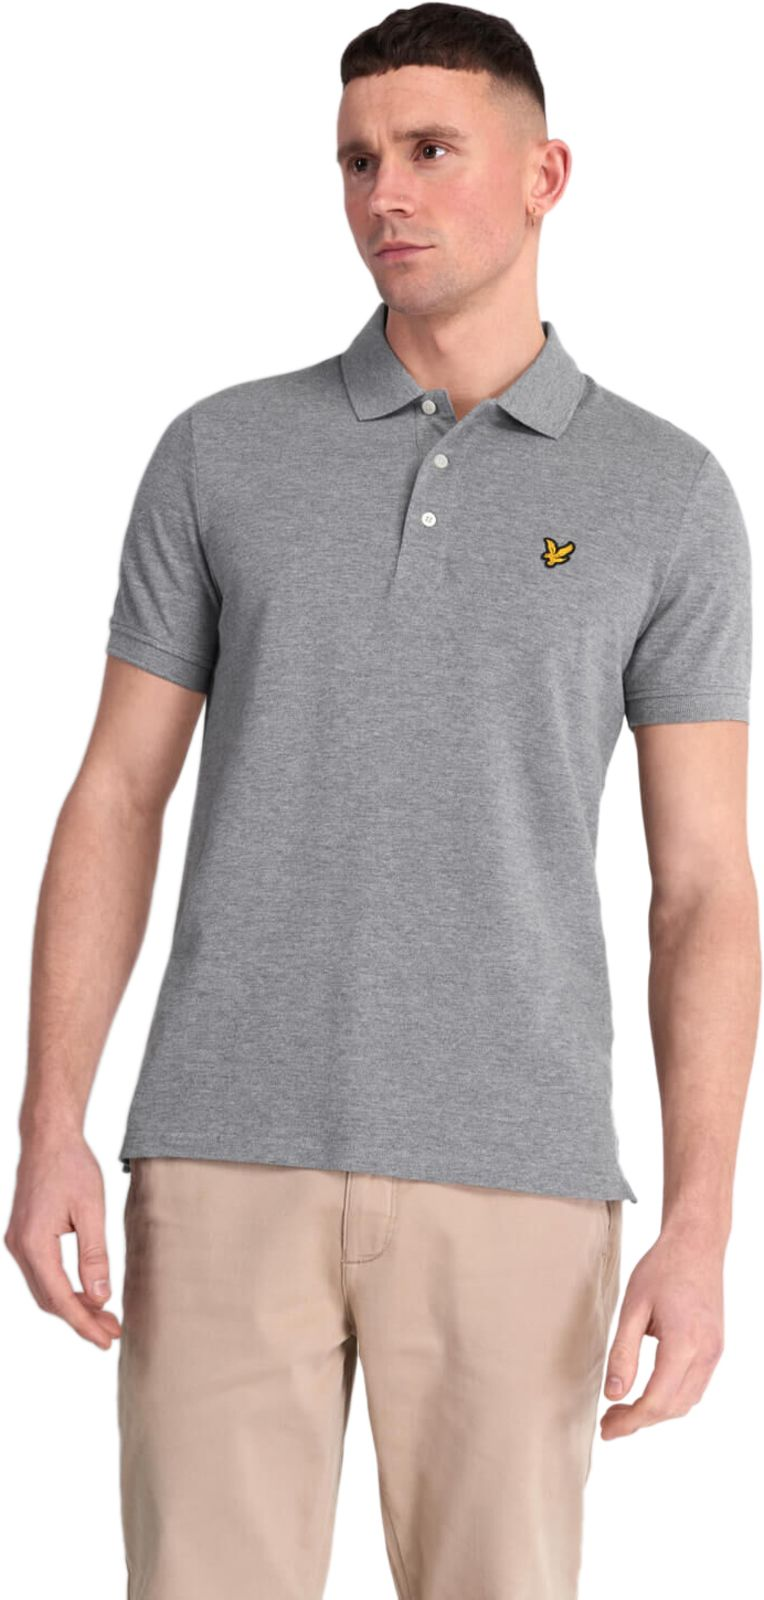 Lyle & Scott Polo Shirt Grey